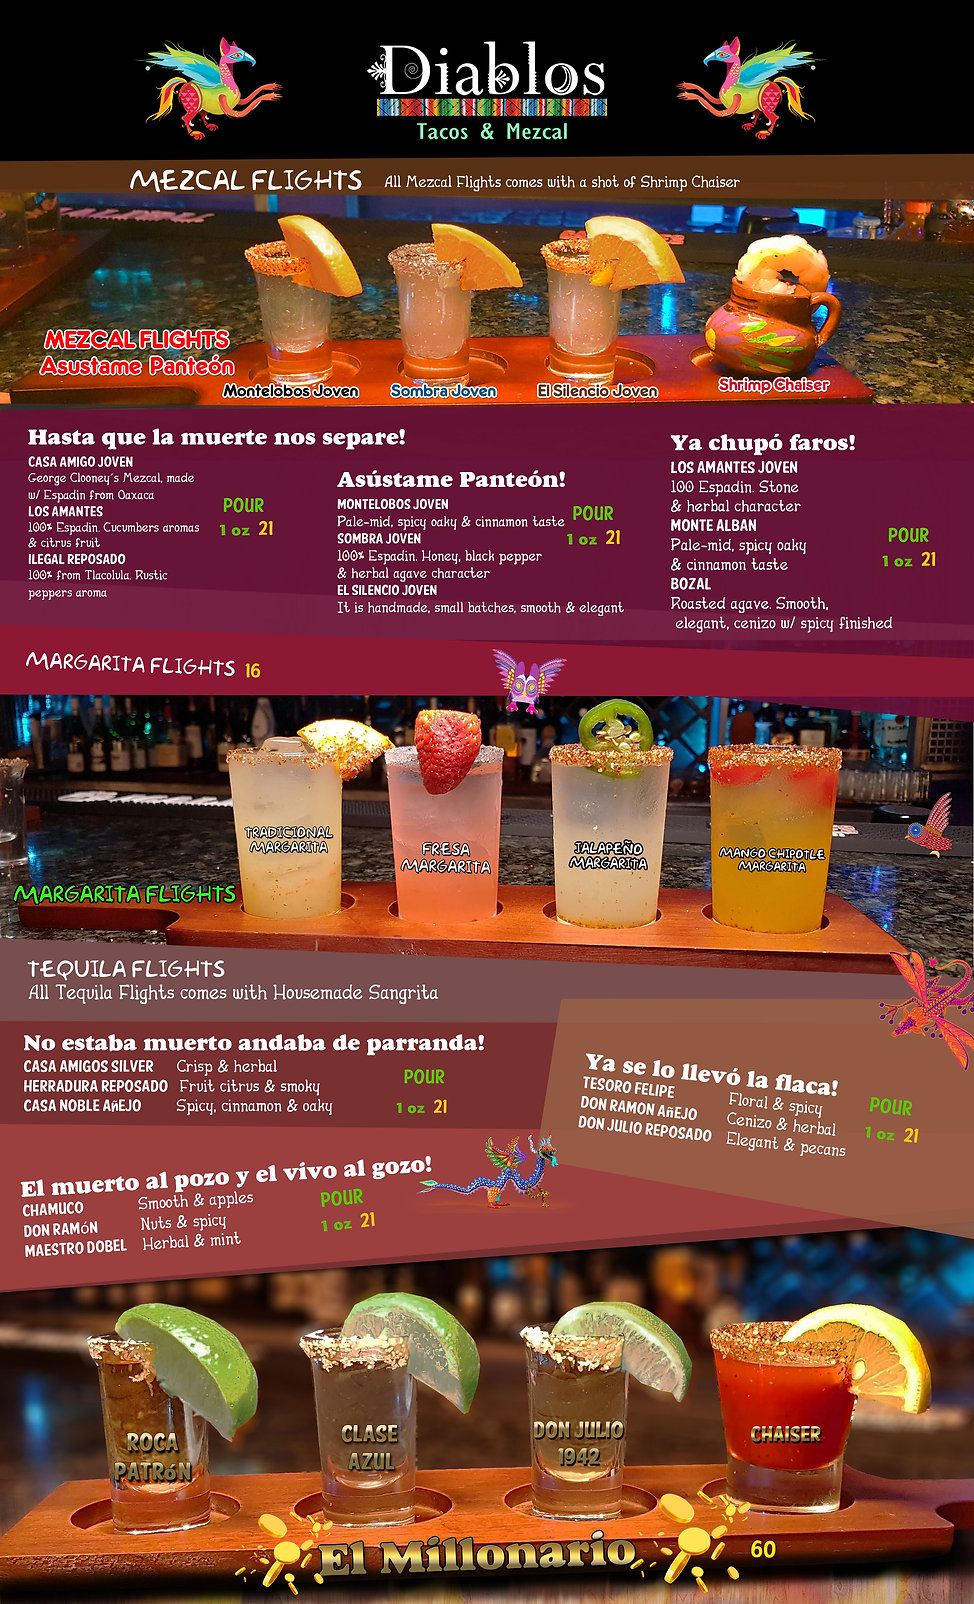 2 diablos drink menu.jpg